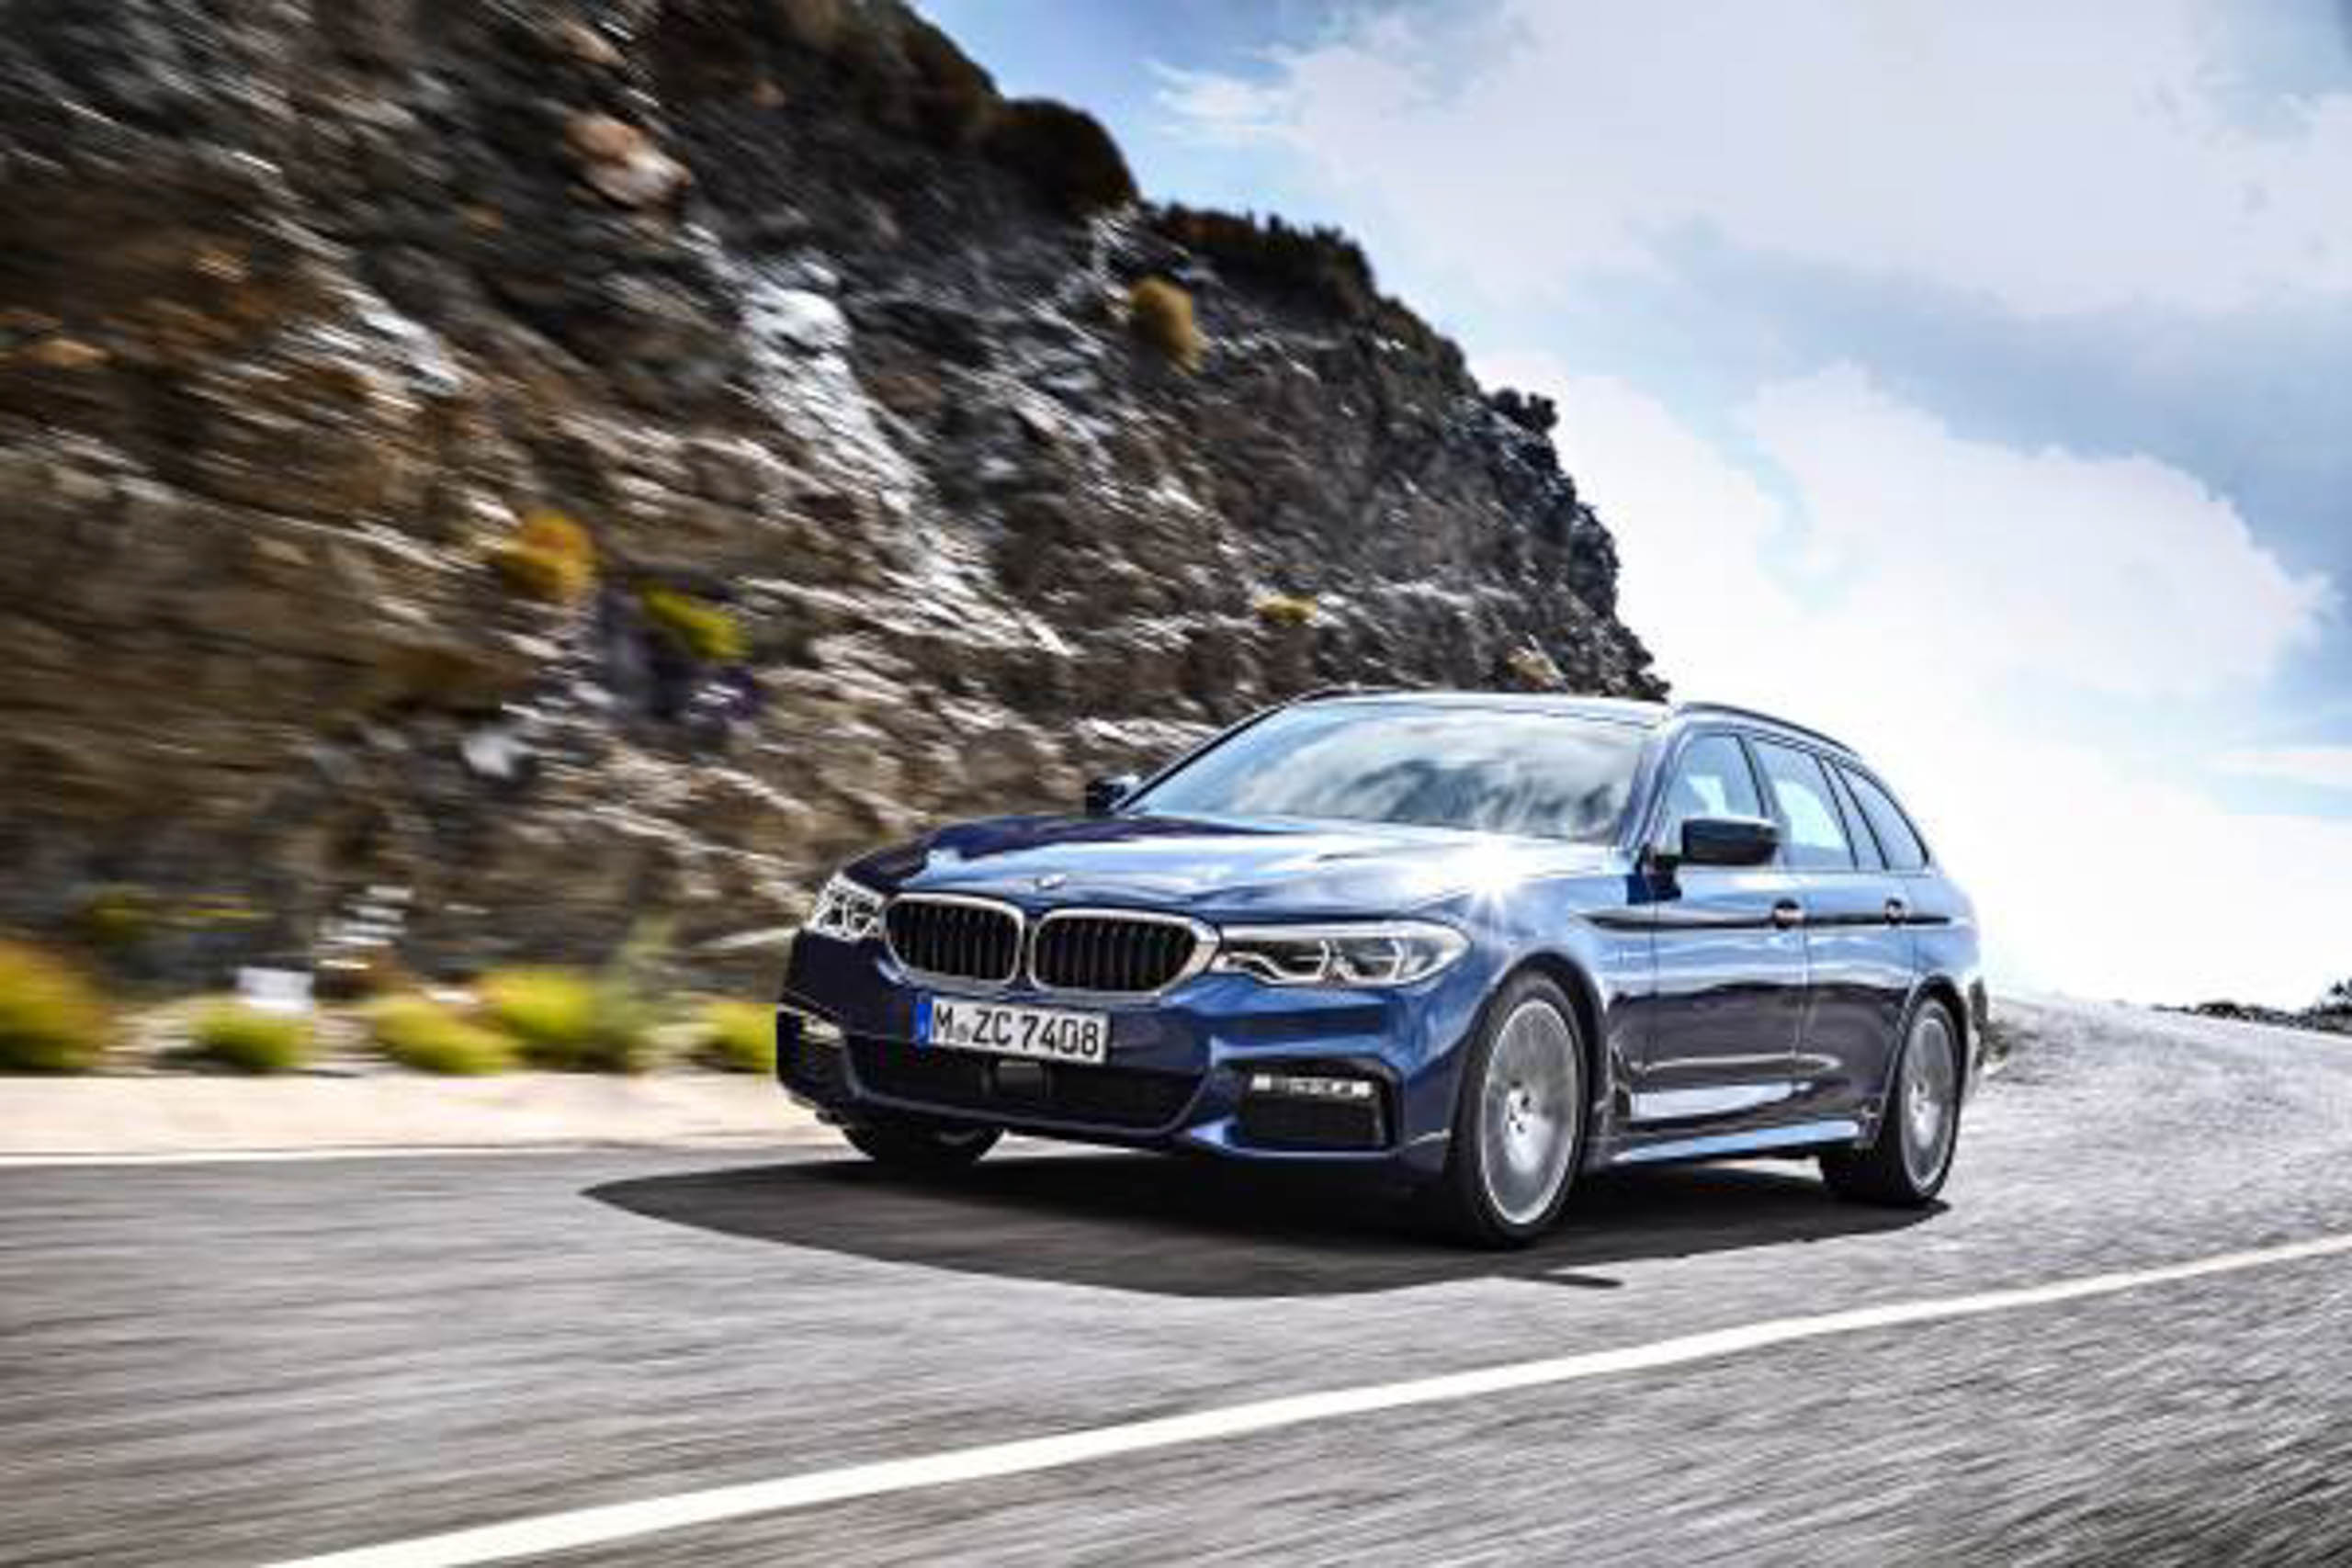 G31 Bmw 5 Series Touring Unveiled 1 700 Litre Boot Image